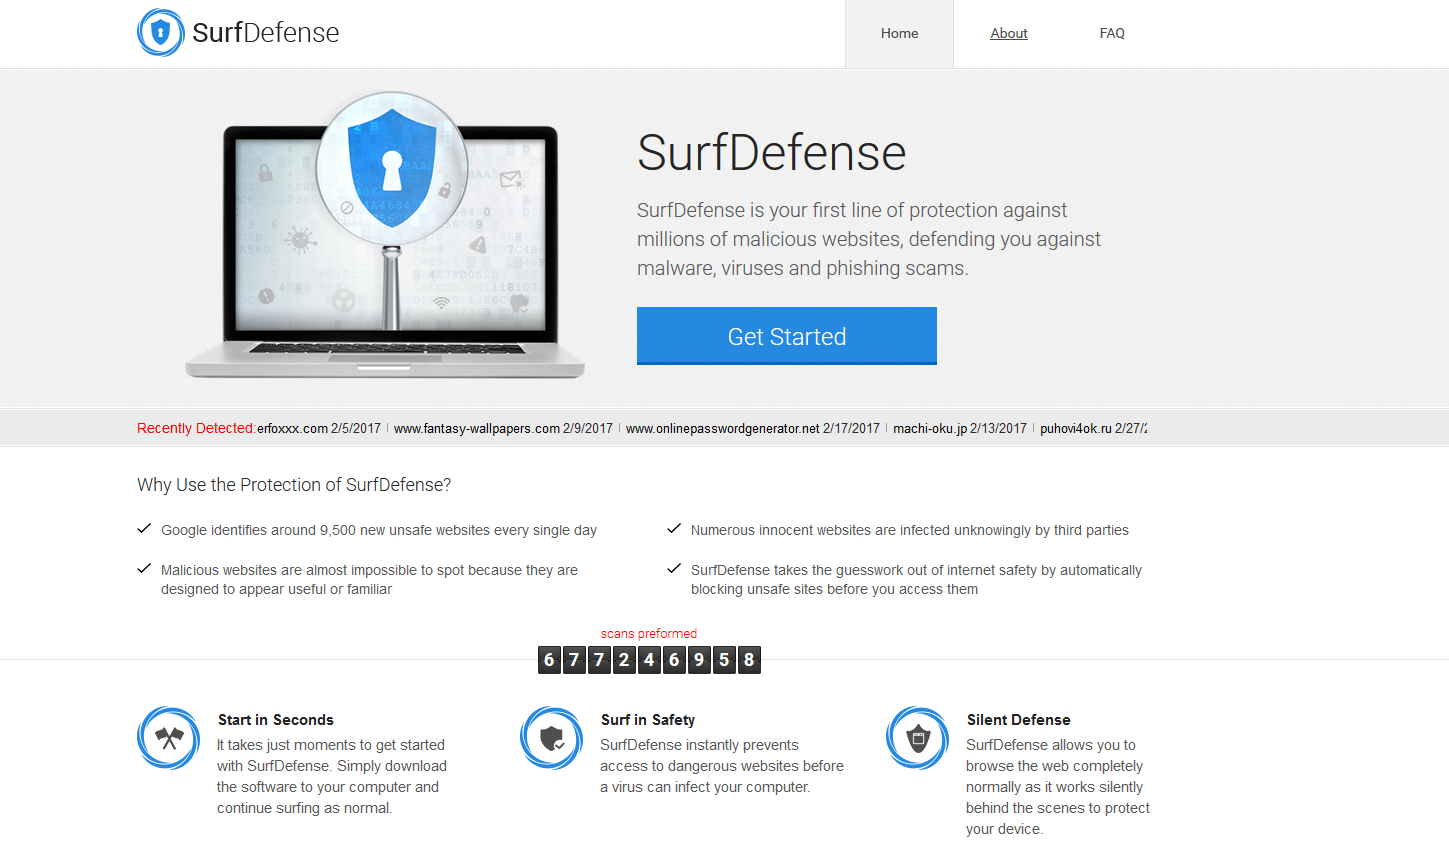 ads by SurfDefense